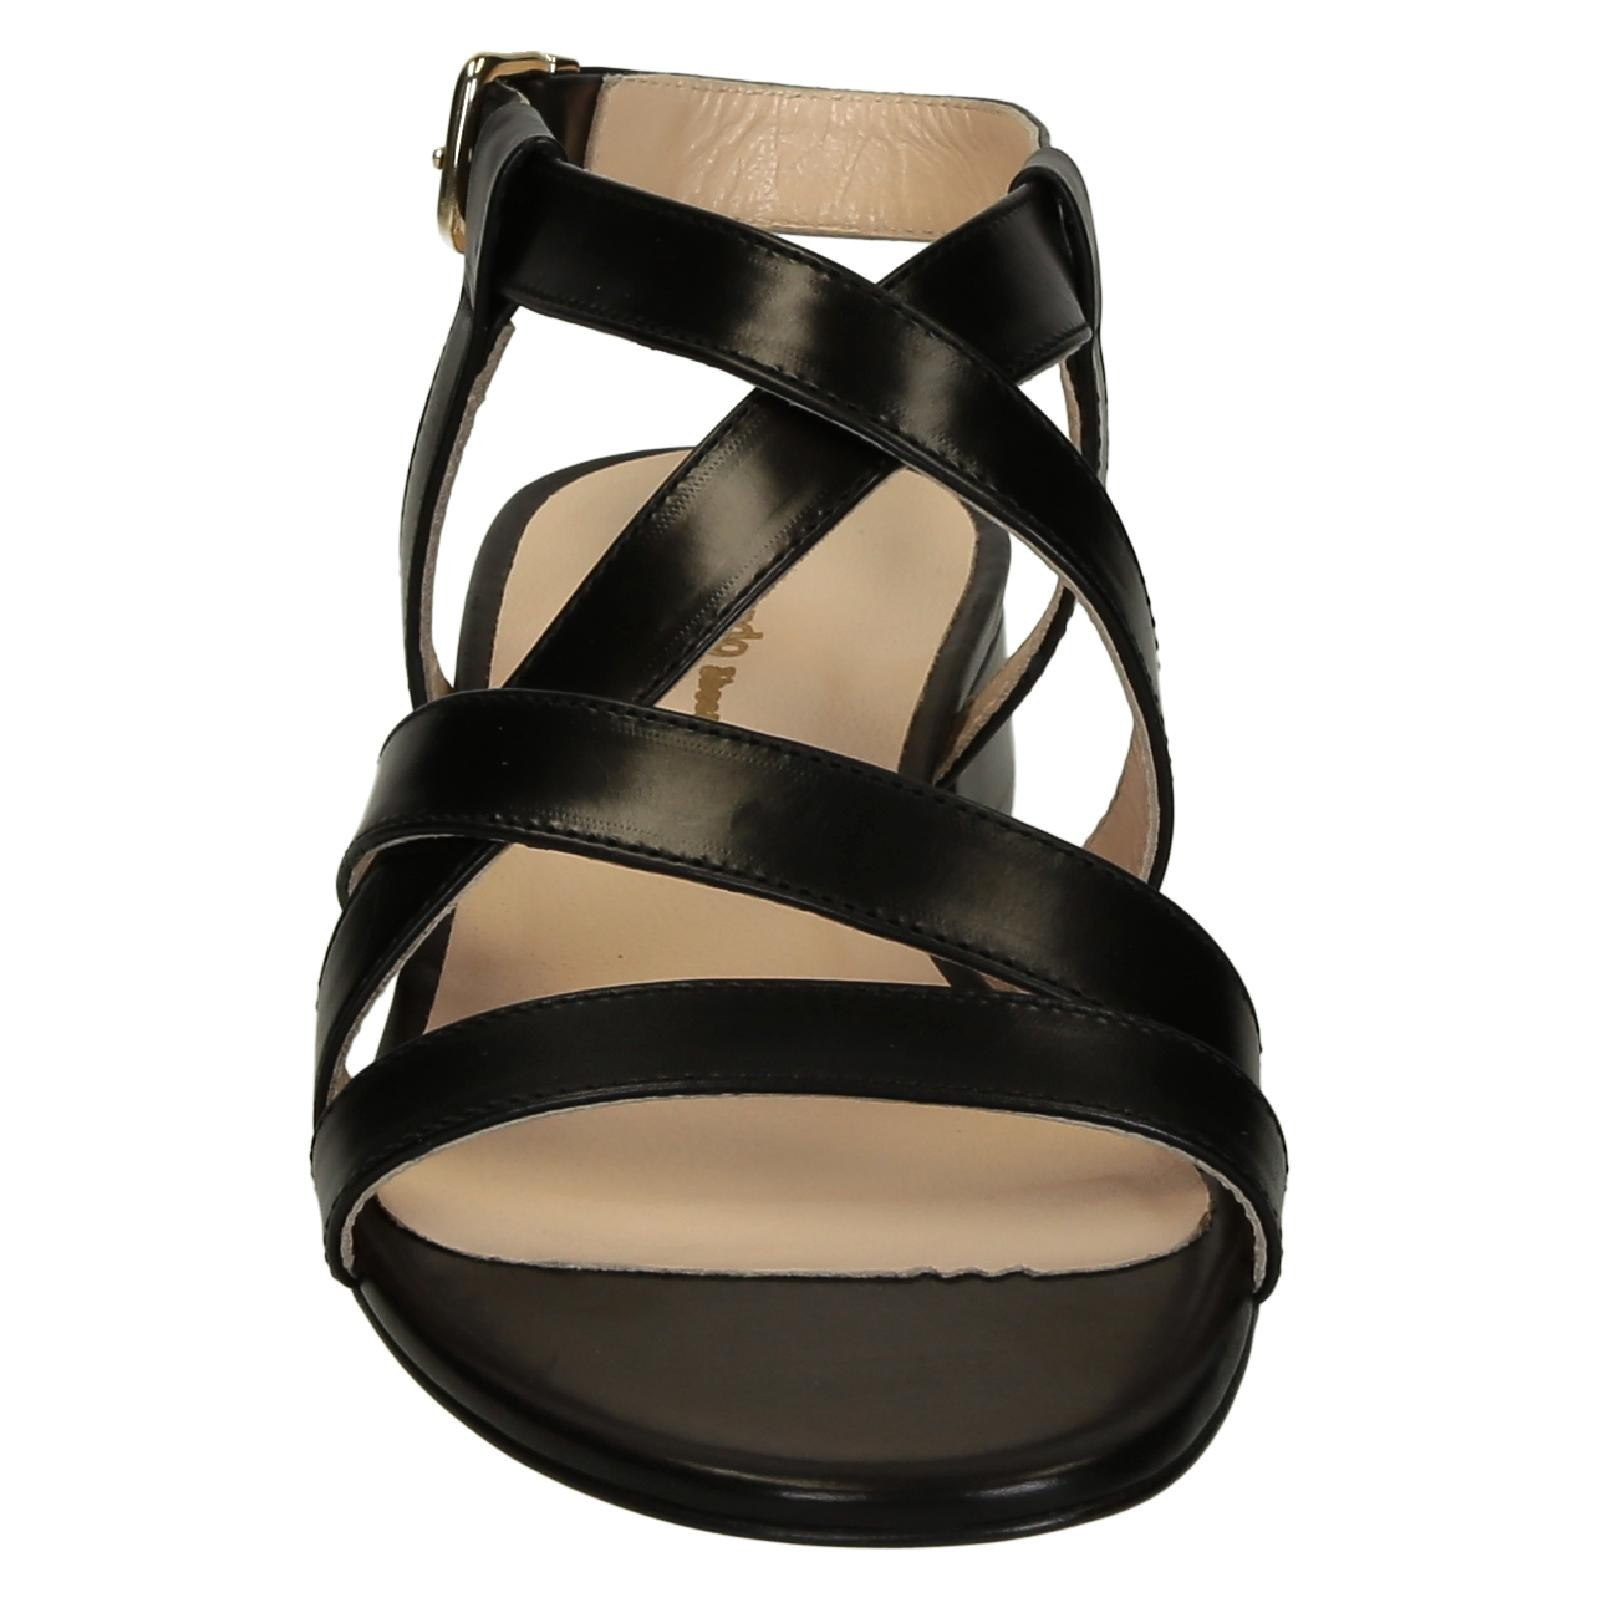 Black leather sandals low heel -  Low Heels Black Leather Strappy Sandals For Women 4